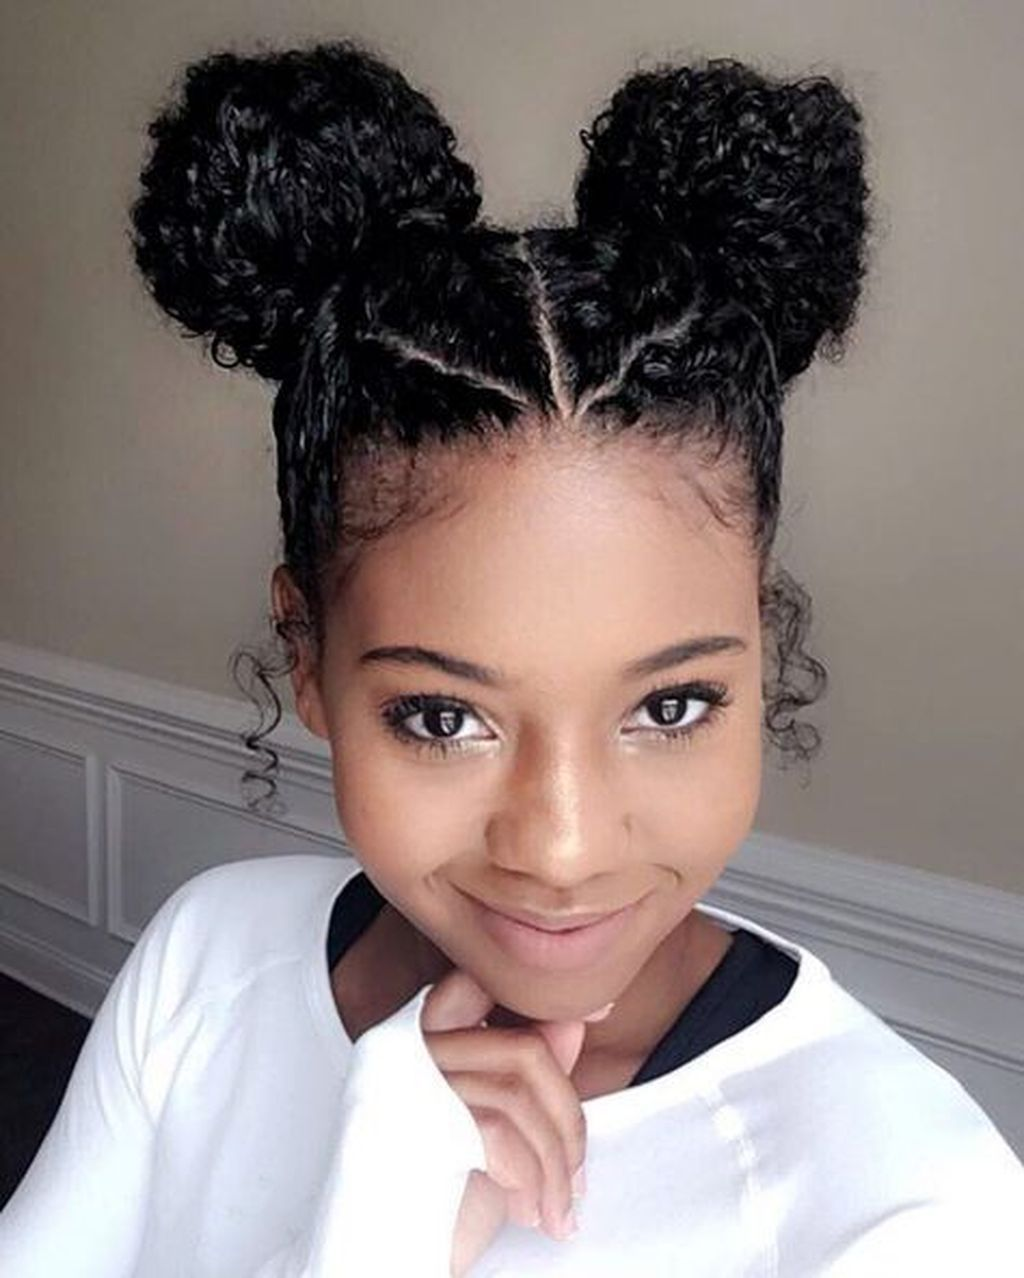 36 Totally Cute Pigtail Hairstyle Ideas For Girls With ...